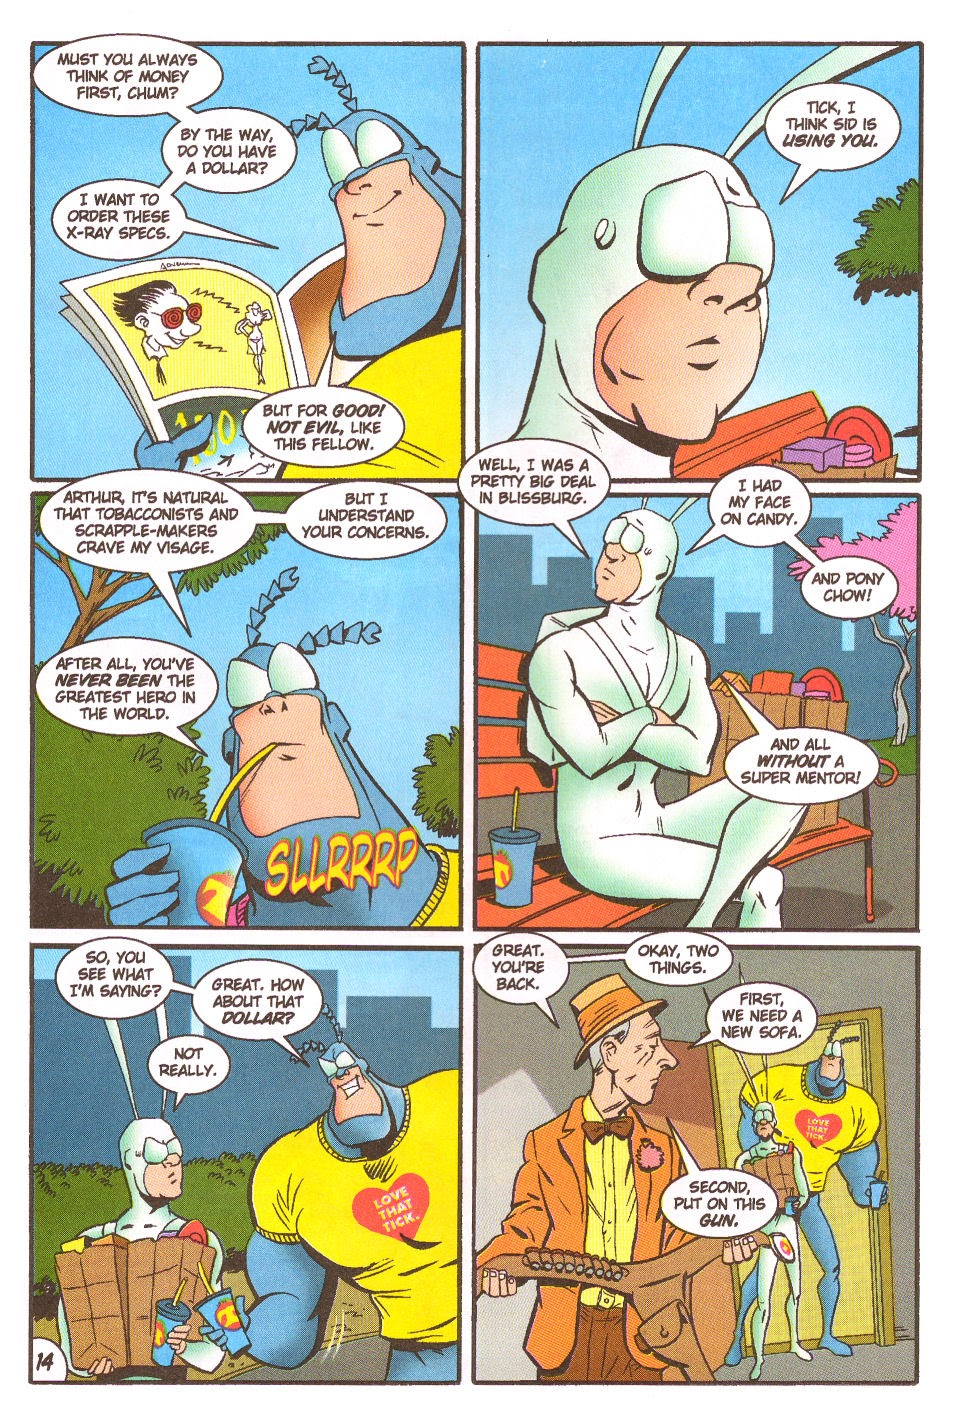 Read online The Tick: Days of Drama comic -  Issue #5 - 16